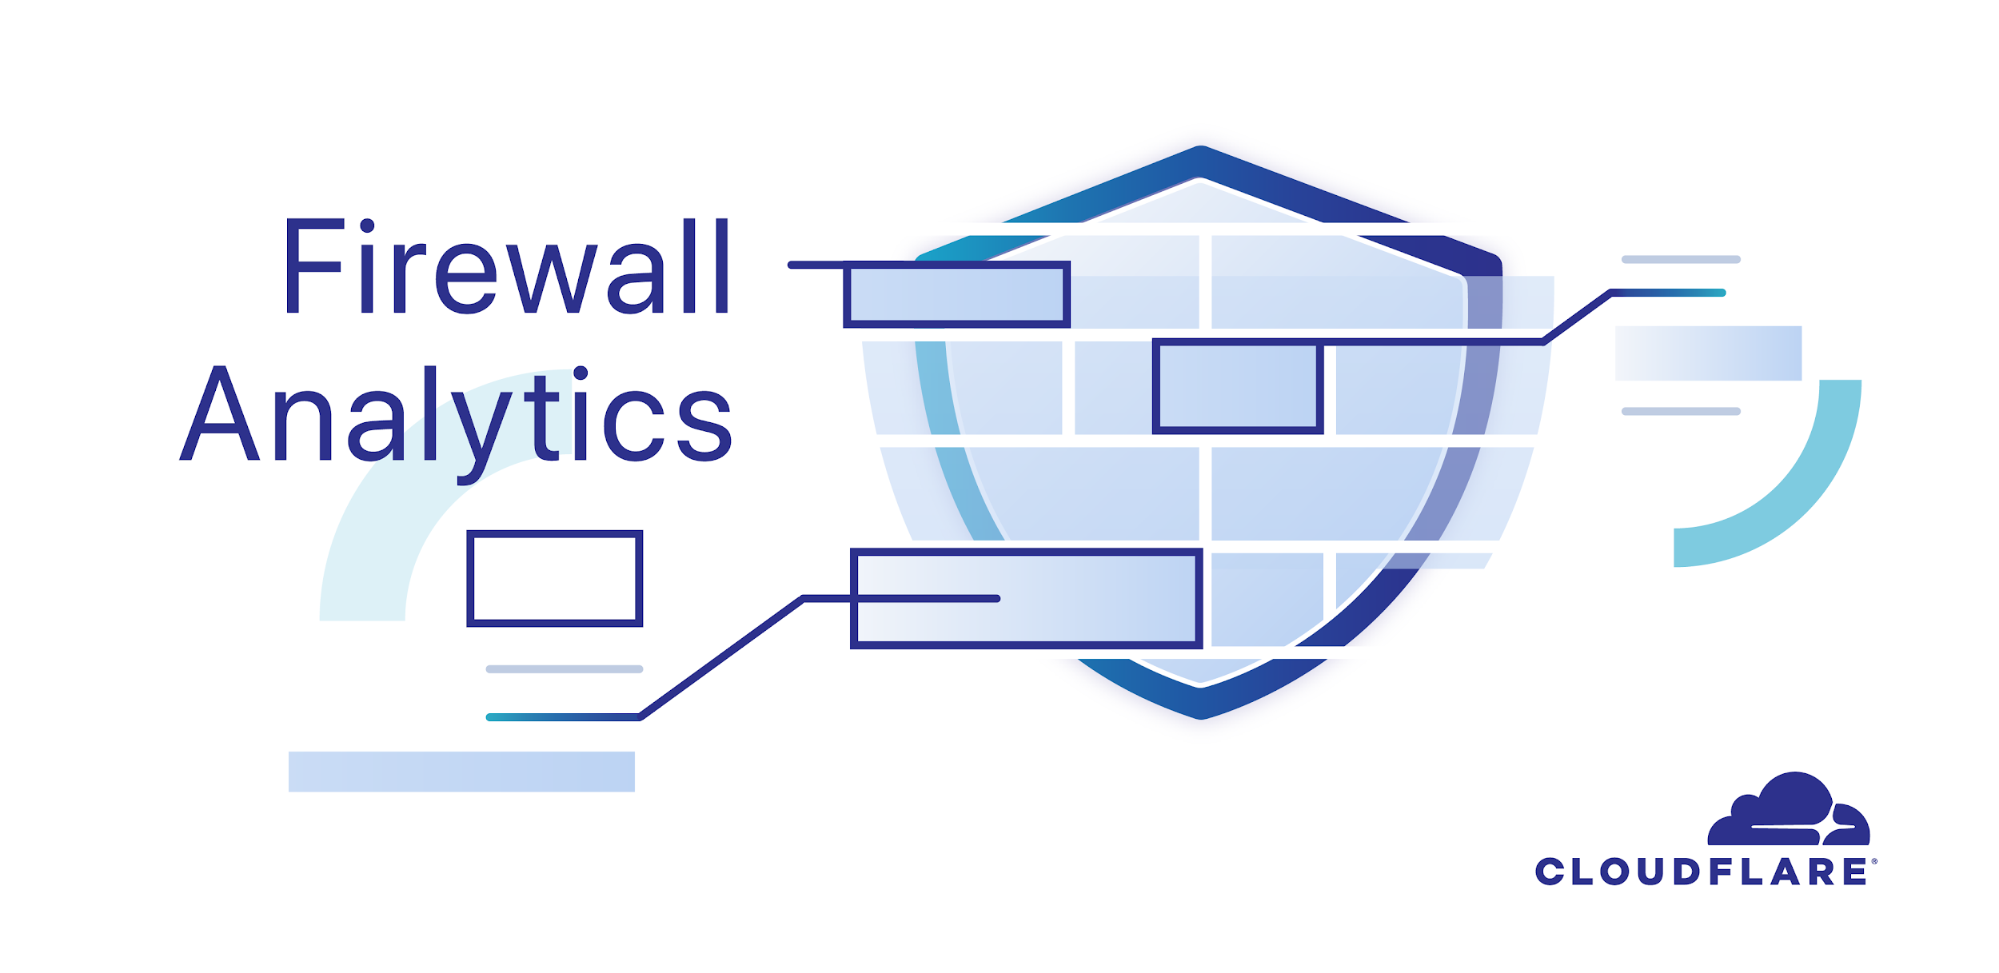 Firewall Analytics: Now available to all paid plans